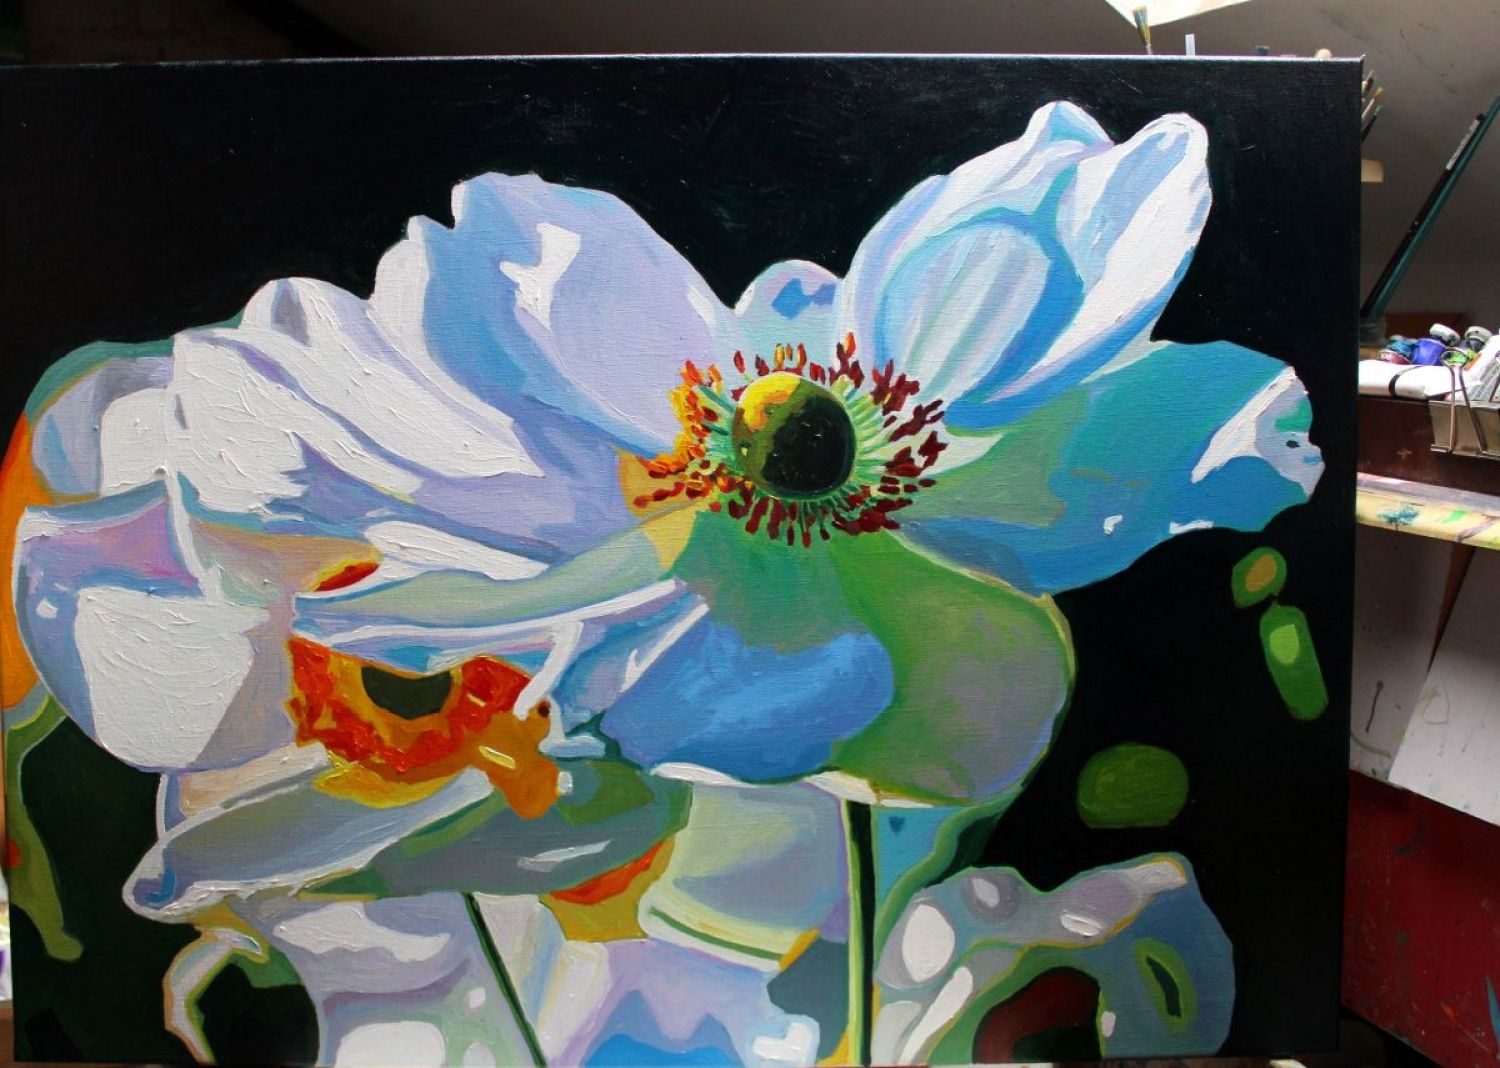 Windswept flowers oil and paintings buy windswept flowers oil painting by emma cownie on artfinder discover thousands of other original paintings prints sculptures and photography from mightylinksfo